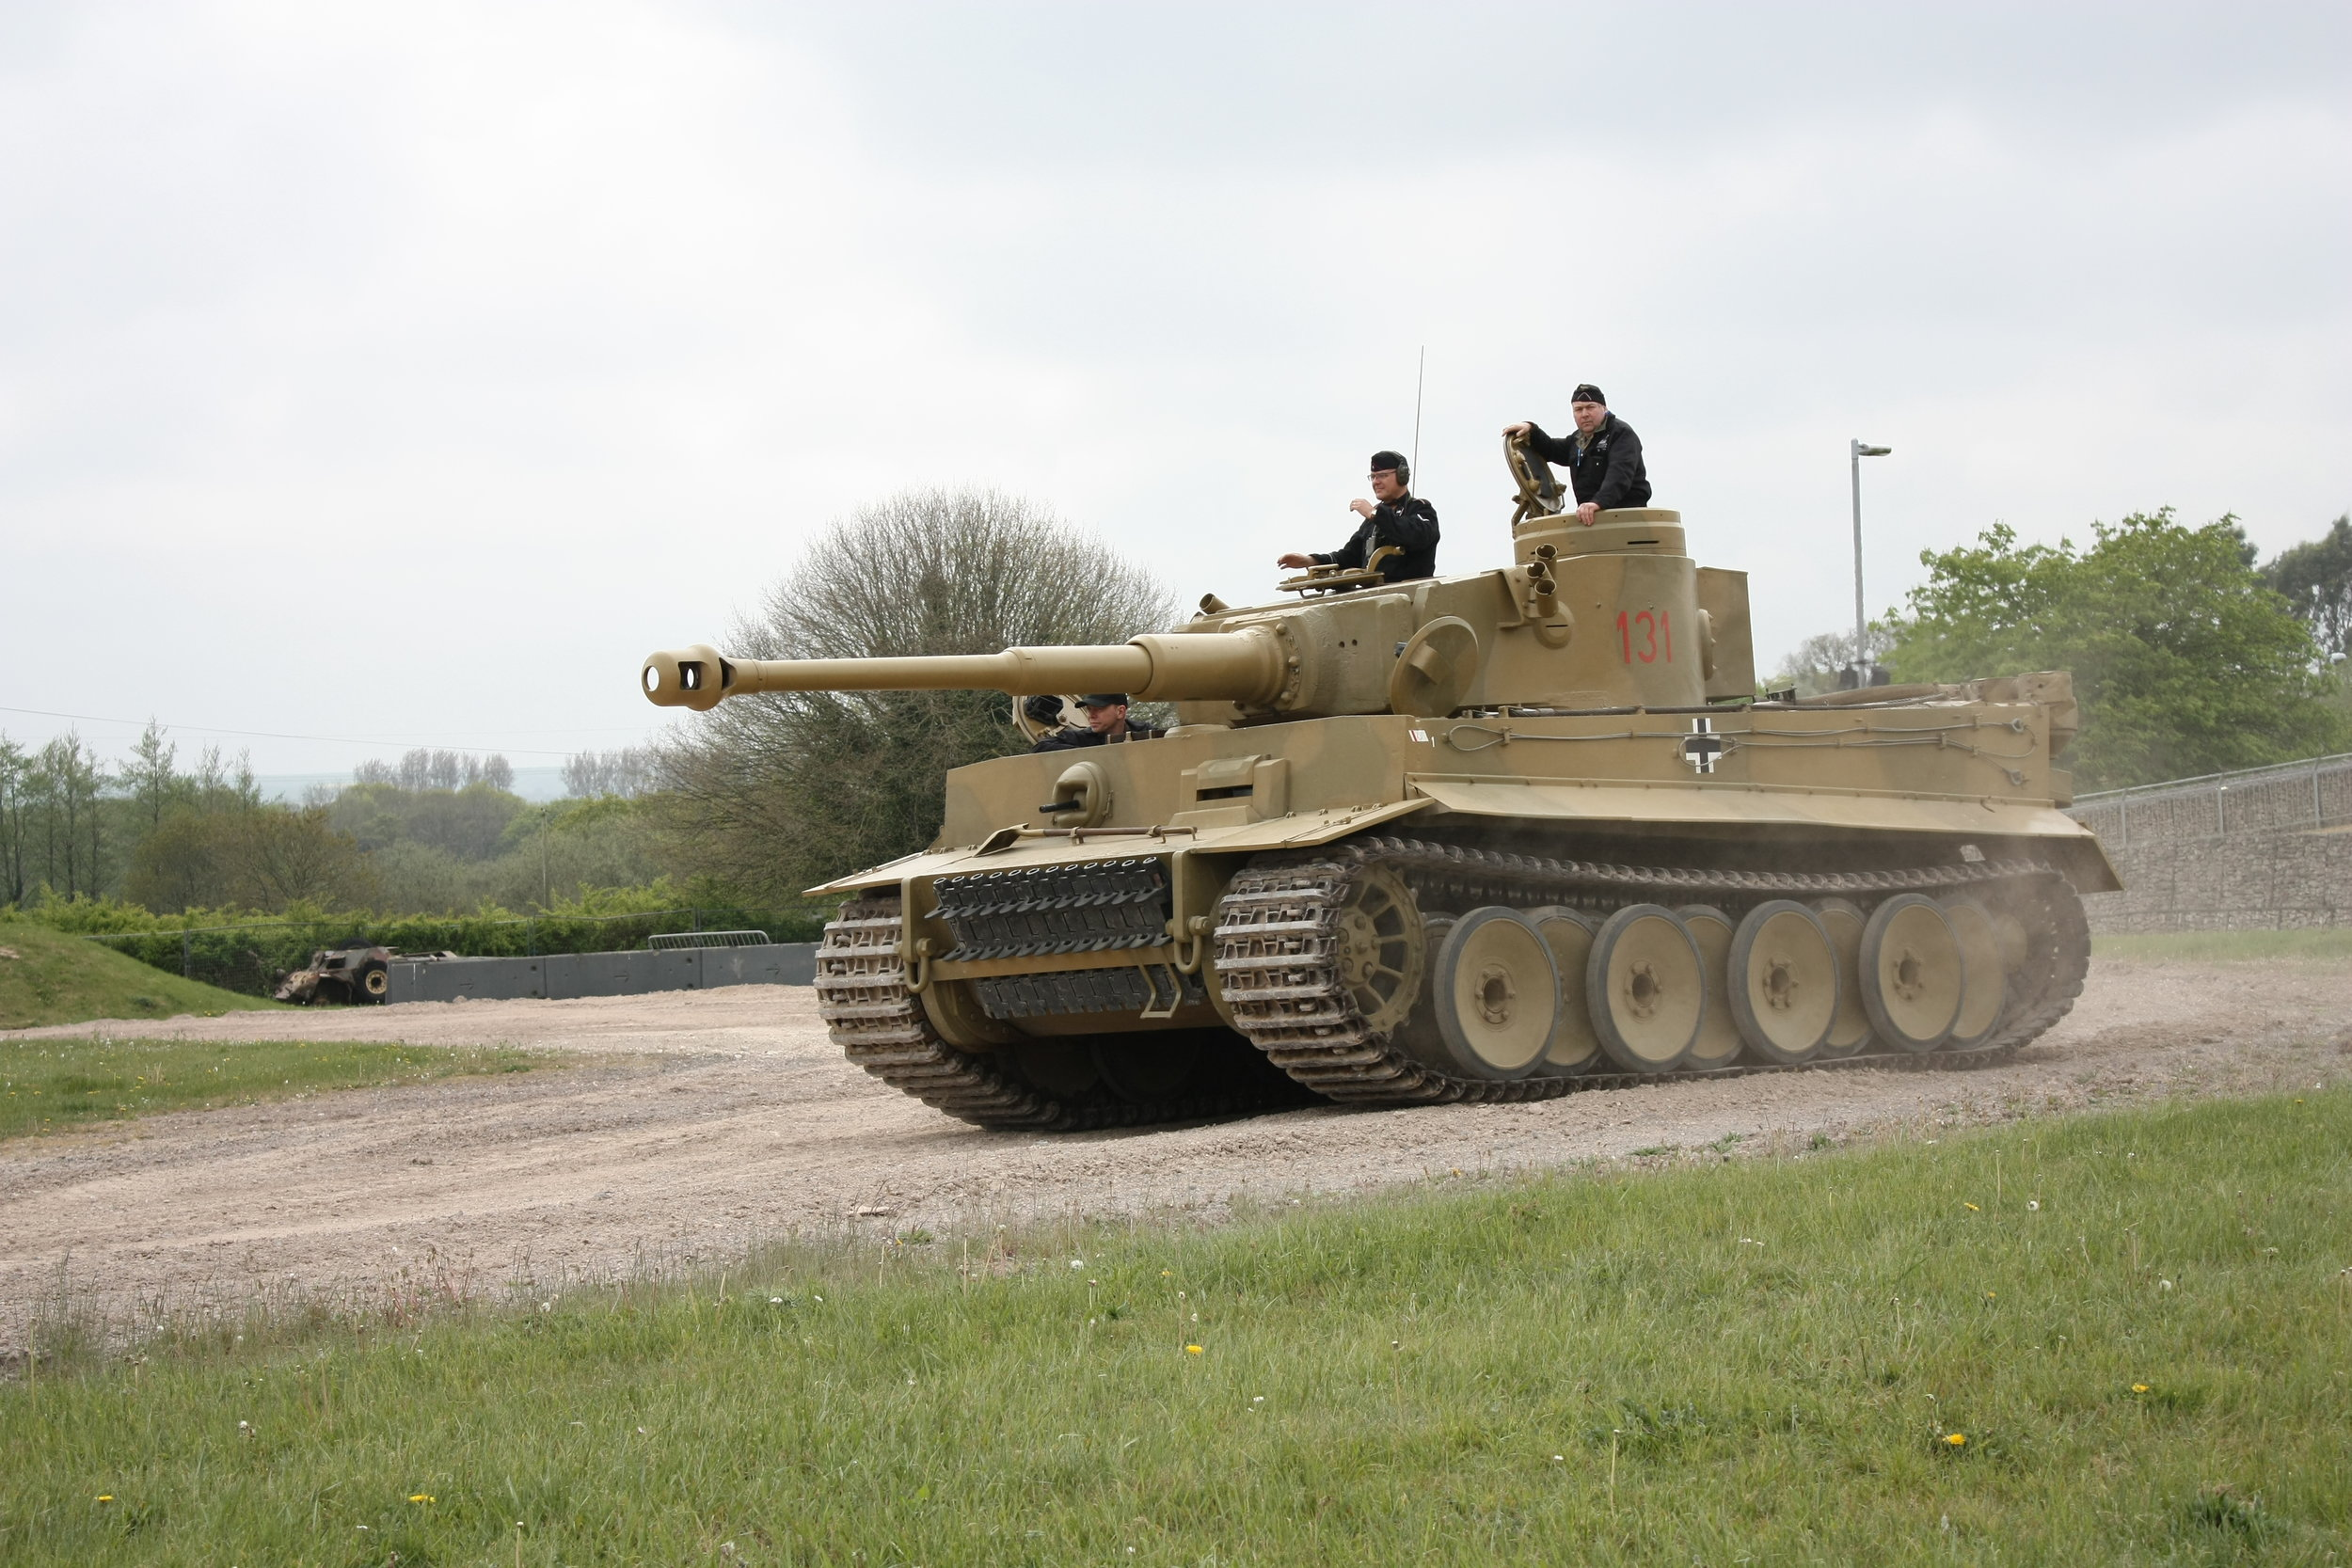 Tiger 131. Captured by the British in WWII and moved back to England in total secrecy. It stars in the movie  Fury . No, really.